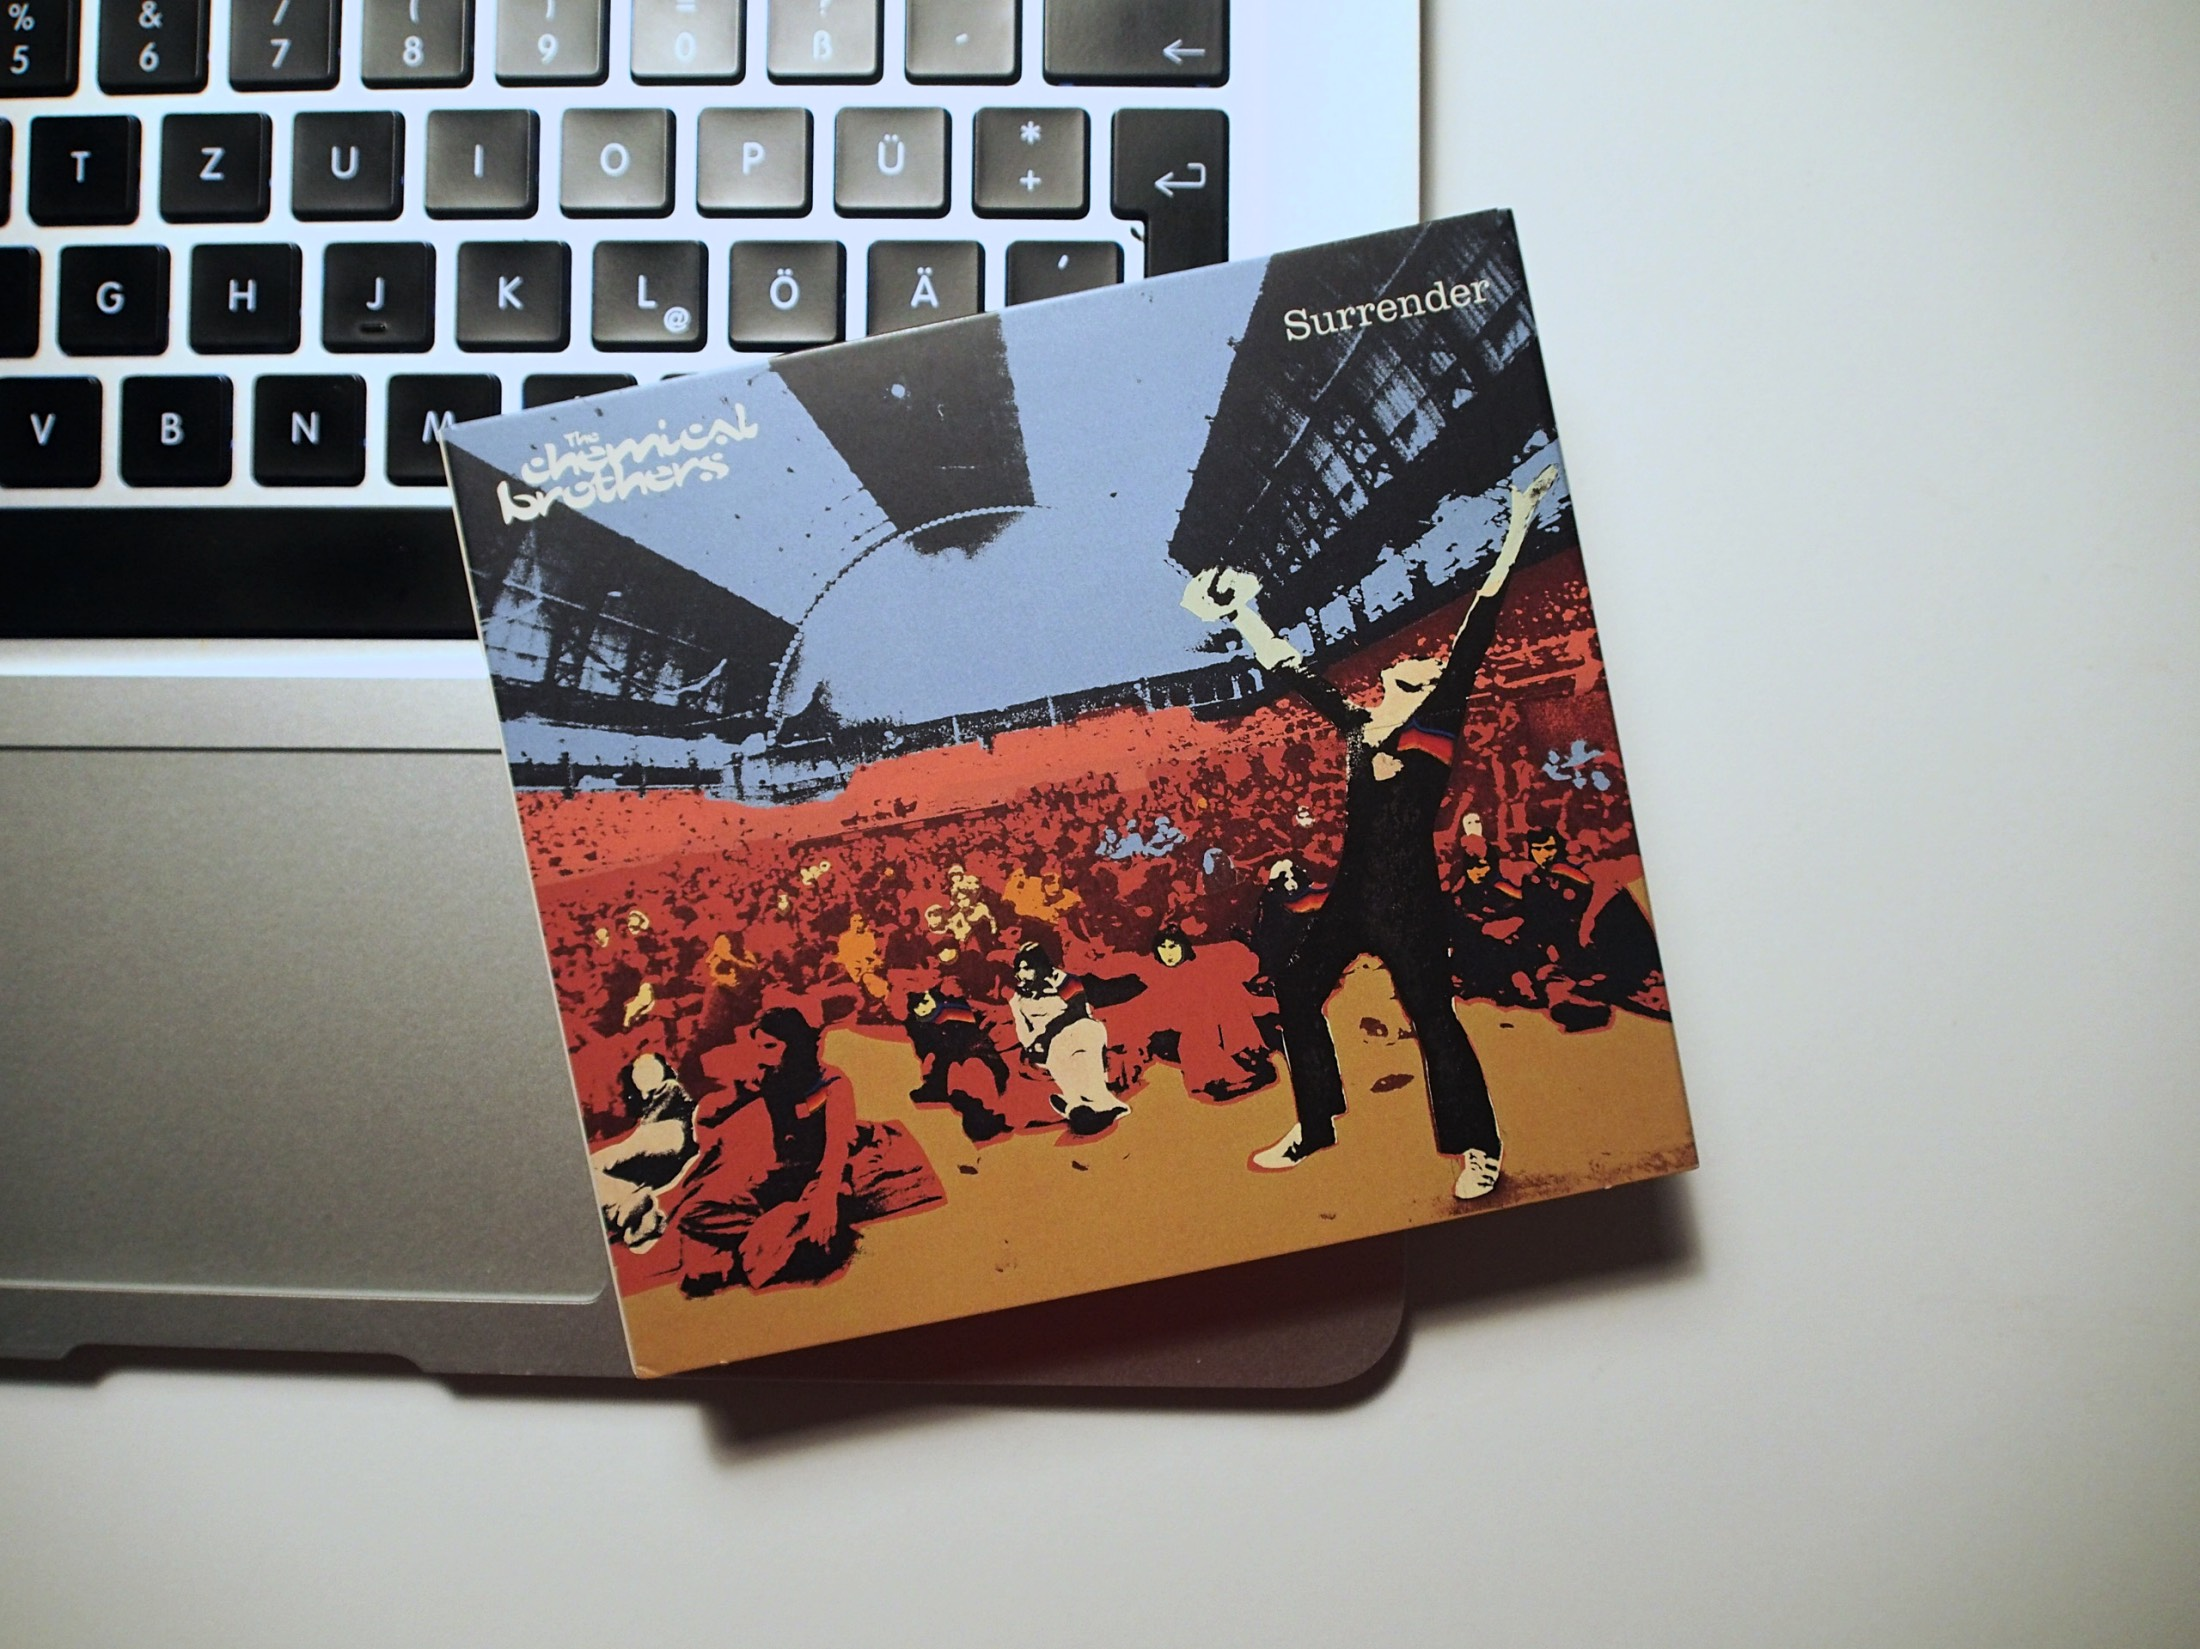 The Chemical Brothers / Surrender 20th Anniversary Box / Fotodinge ZoomLab